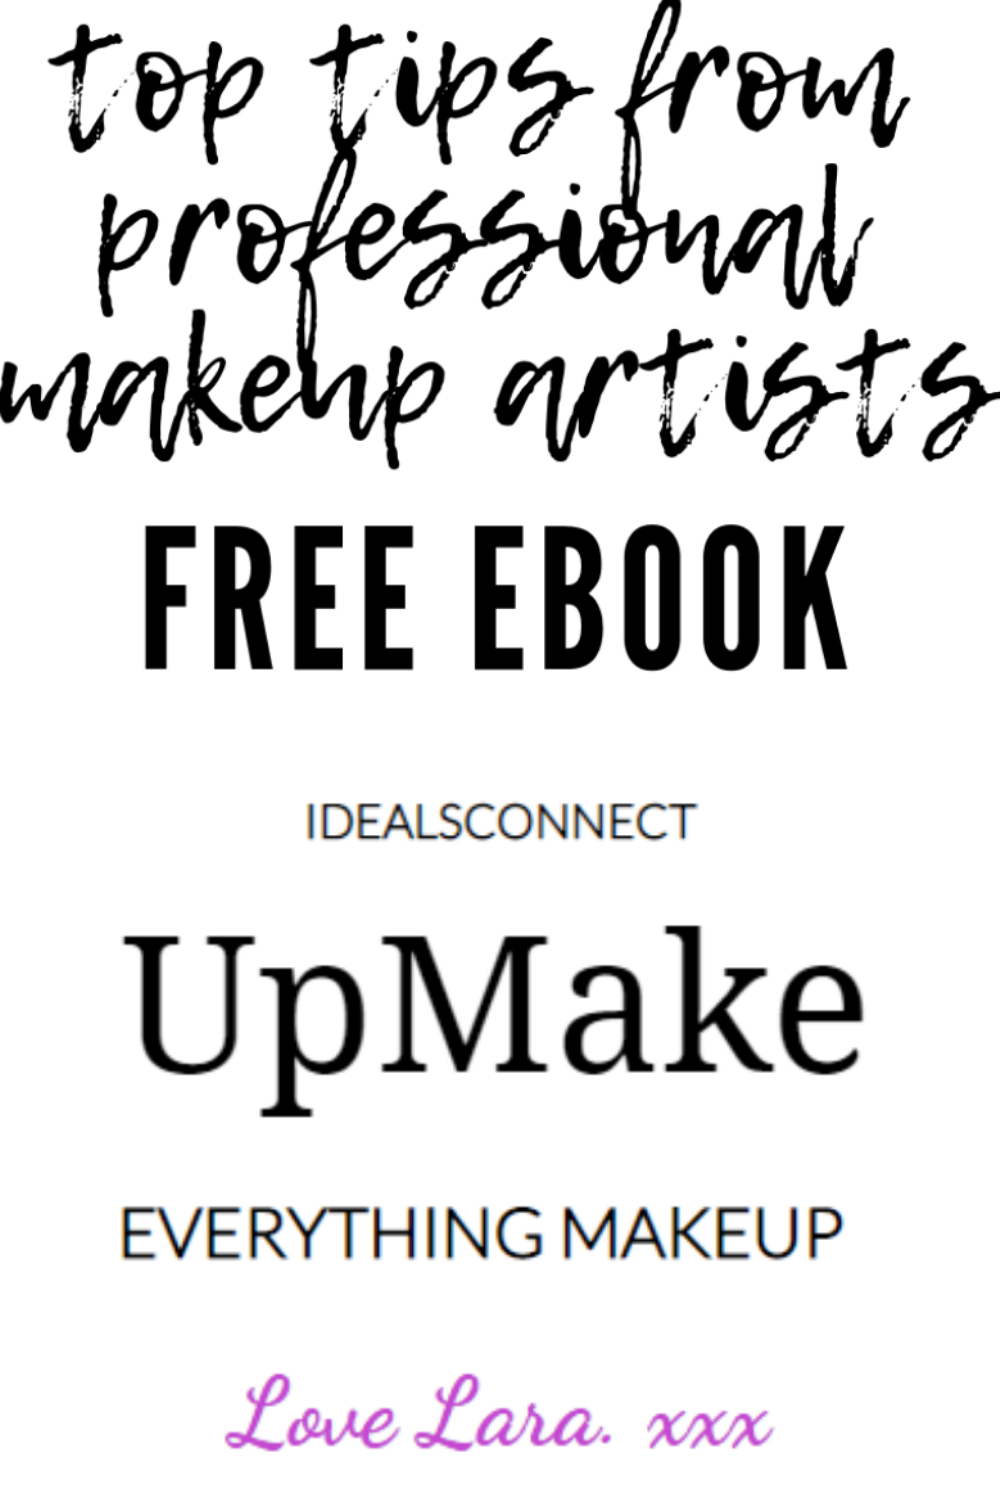 Makeup Tips + Free Ebook. Go to upmake.idealsconnect.info